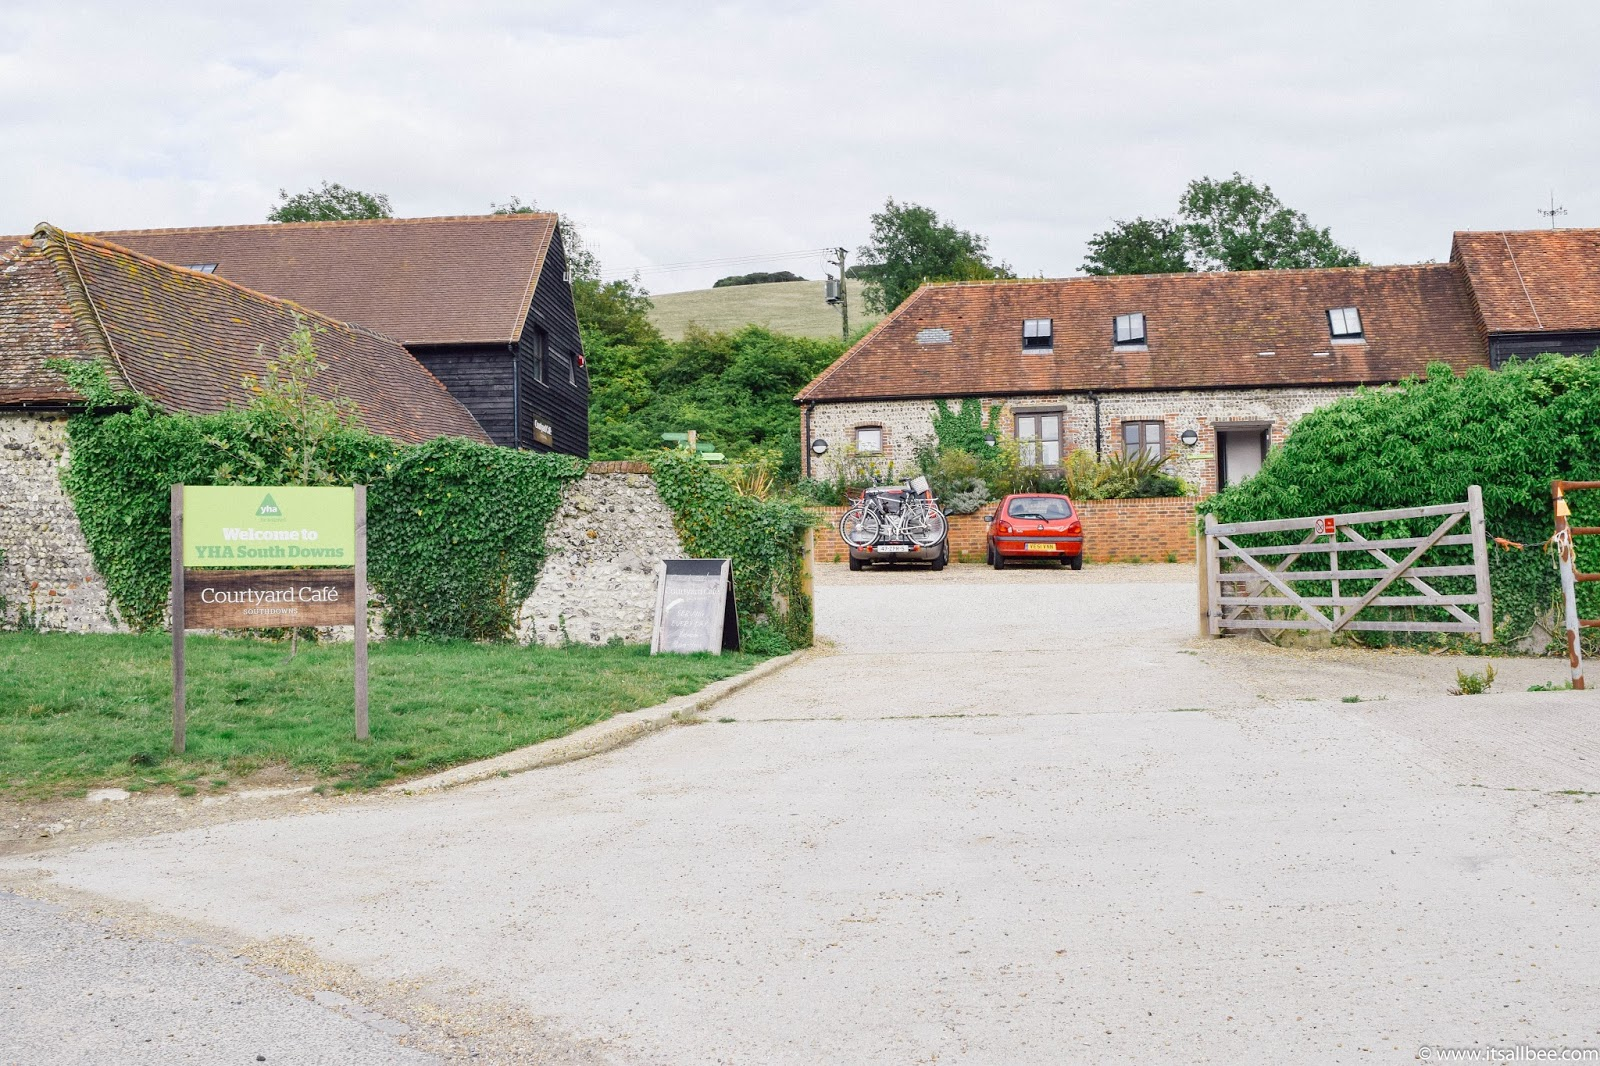 South Downs YHA